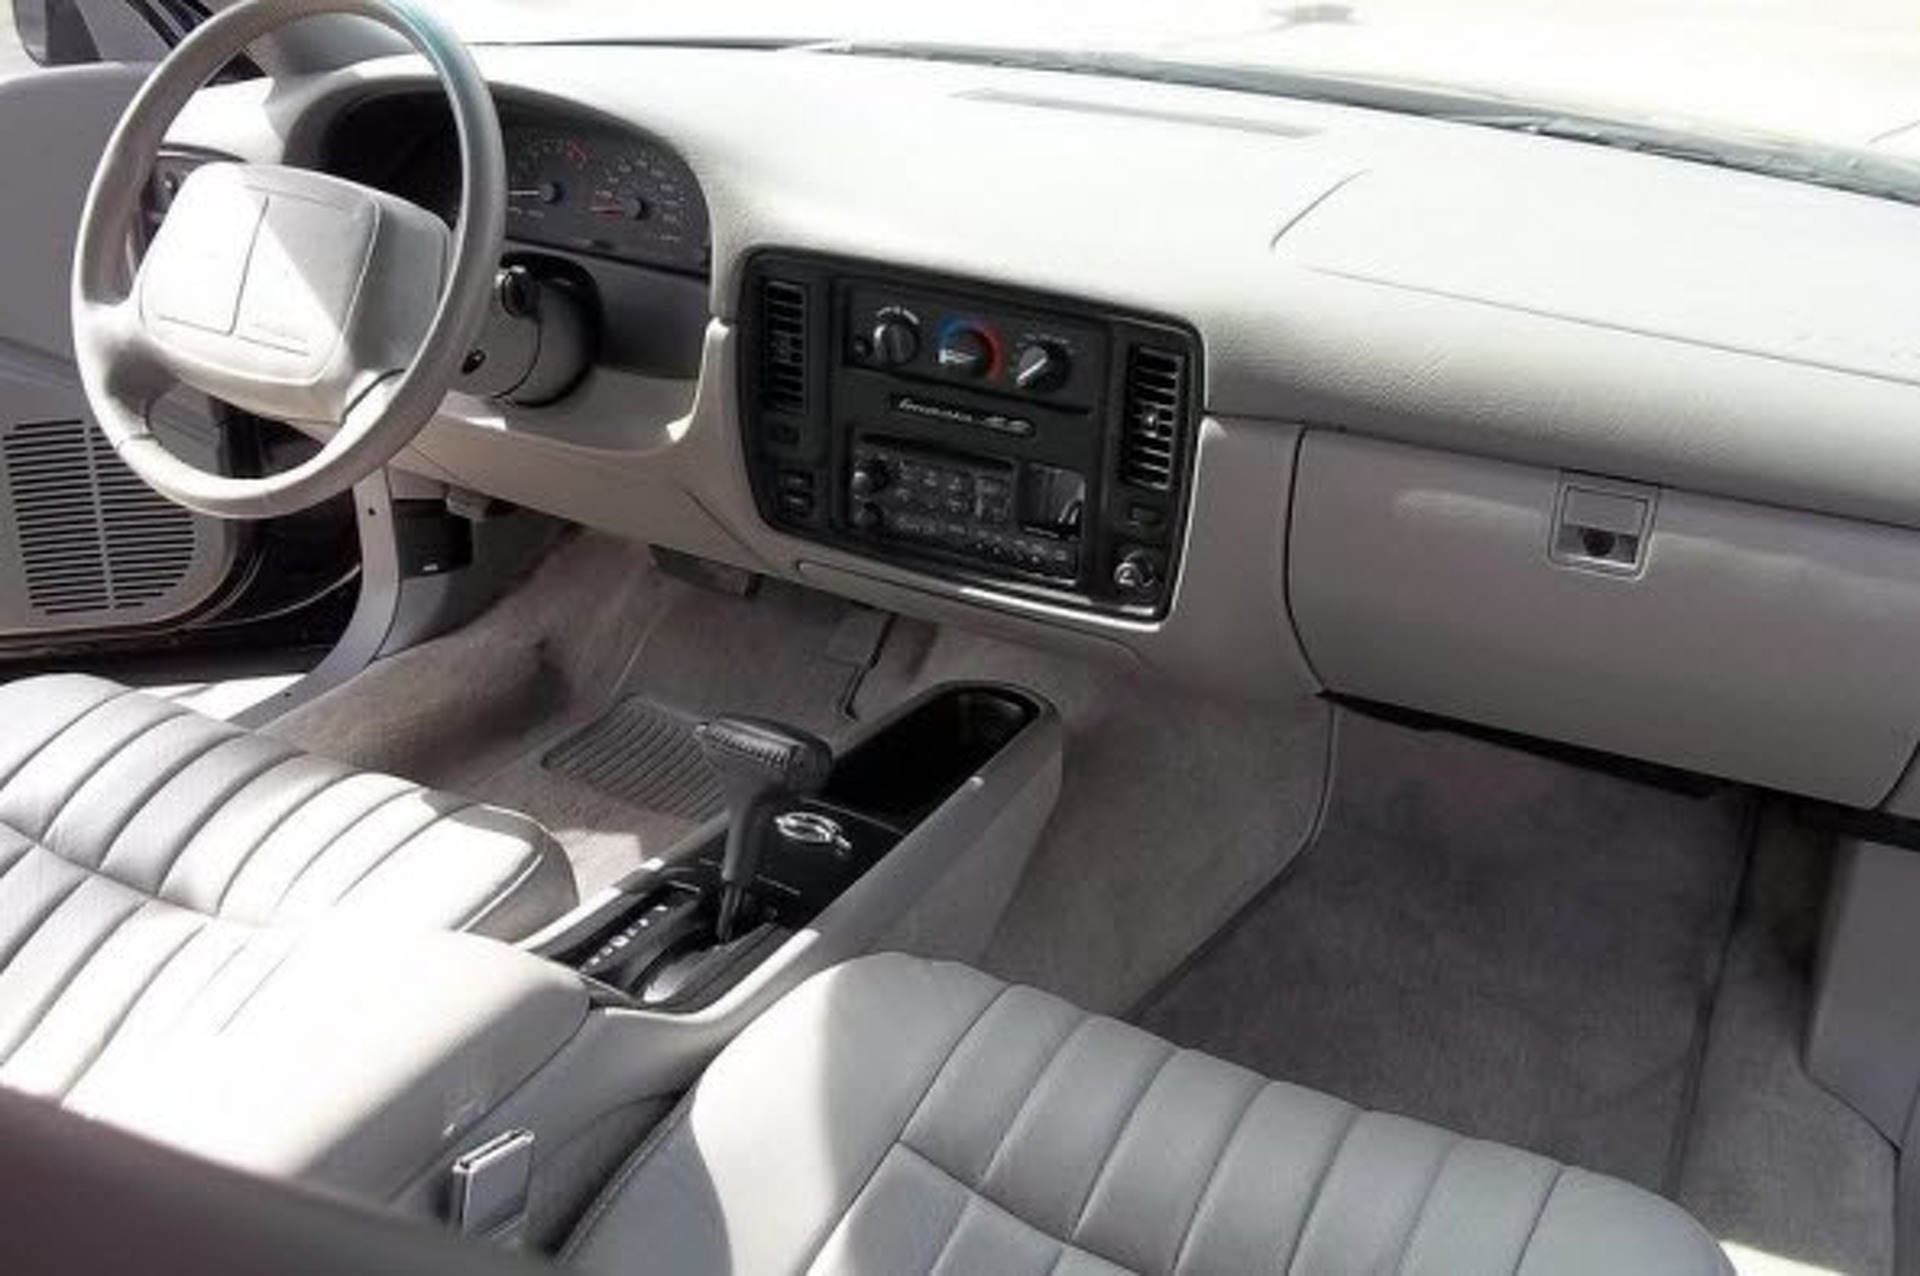 auction car of the week 1996 impala ss 7 400 miles rh motor1 com 1996 impala ss manual 96 impala ss manual